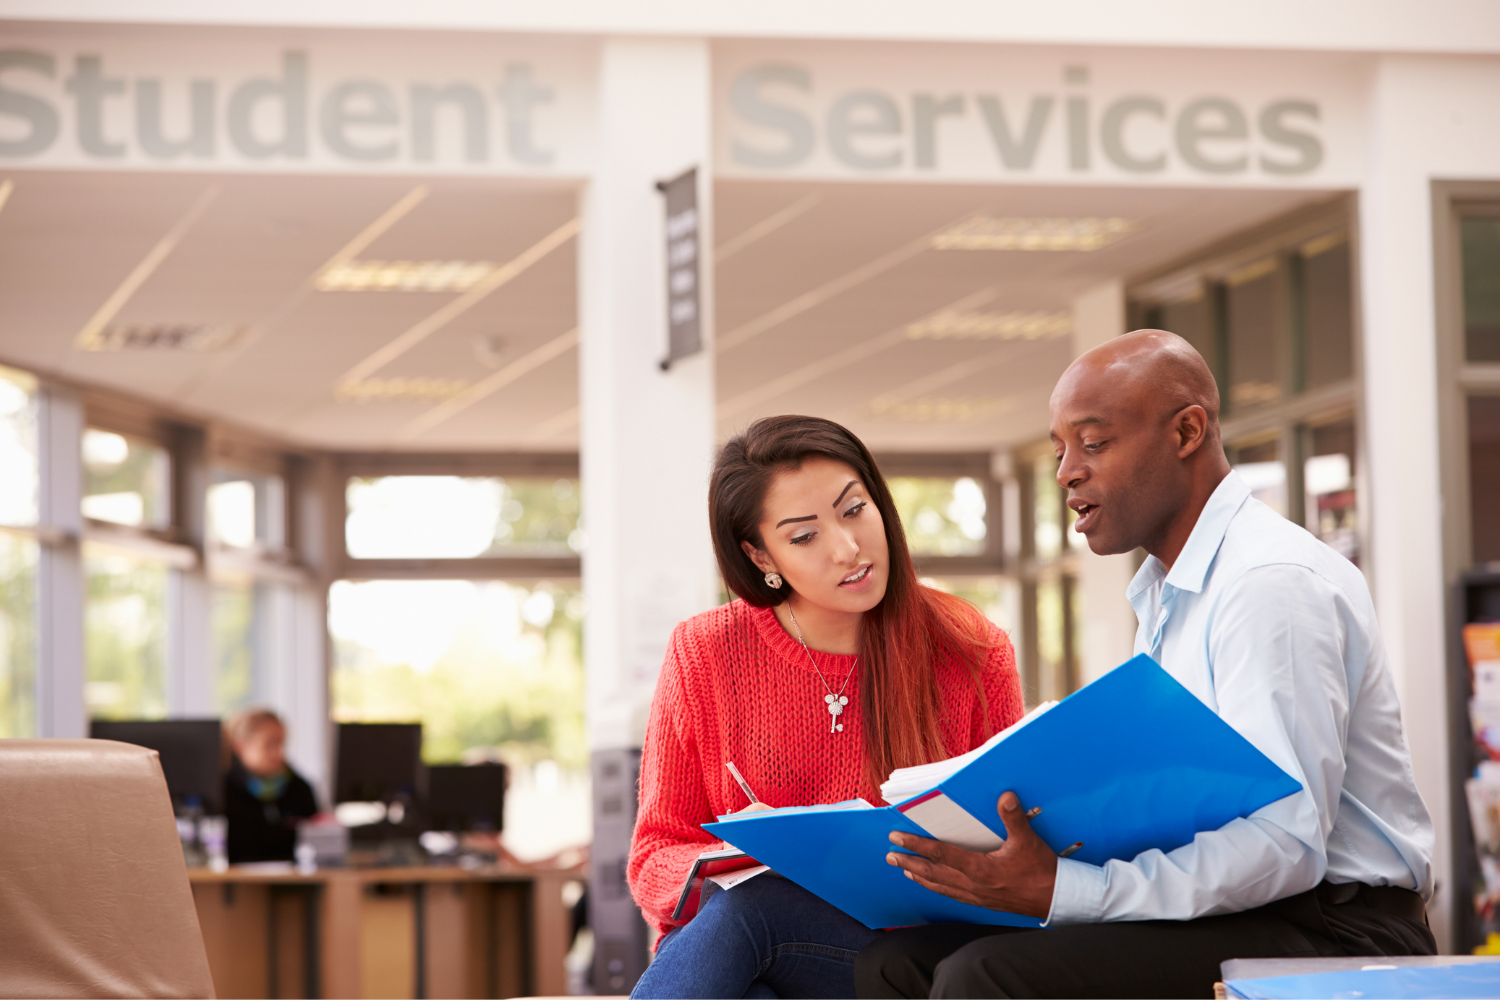 two people siting looking at a binder in a section labeled student services